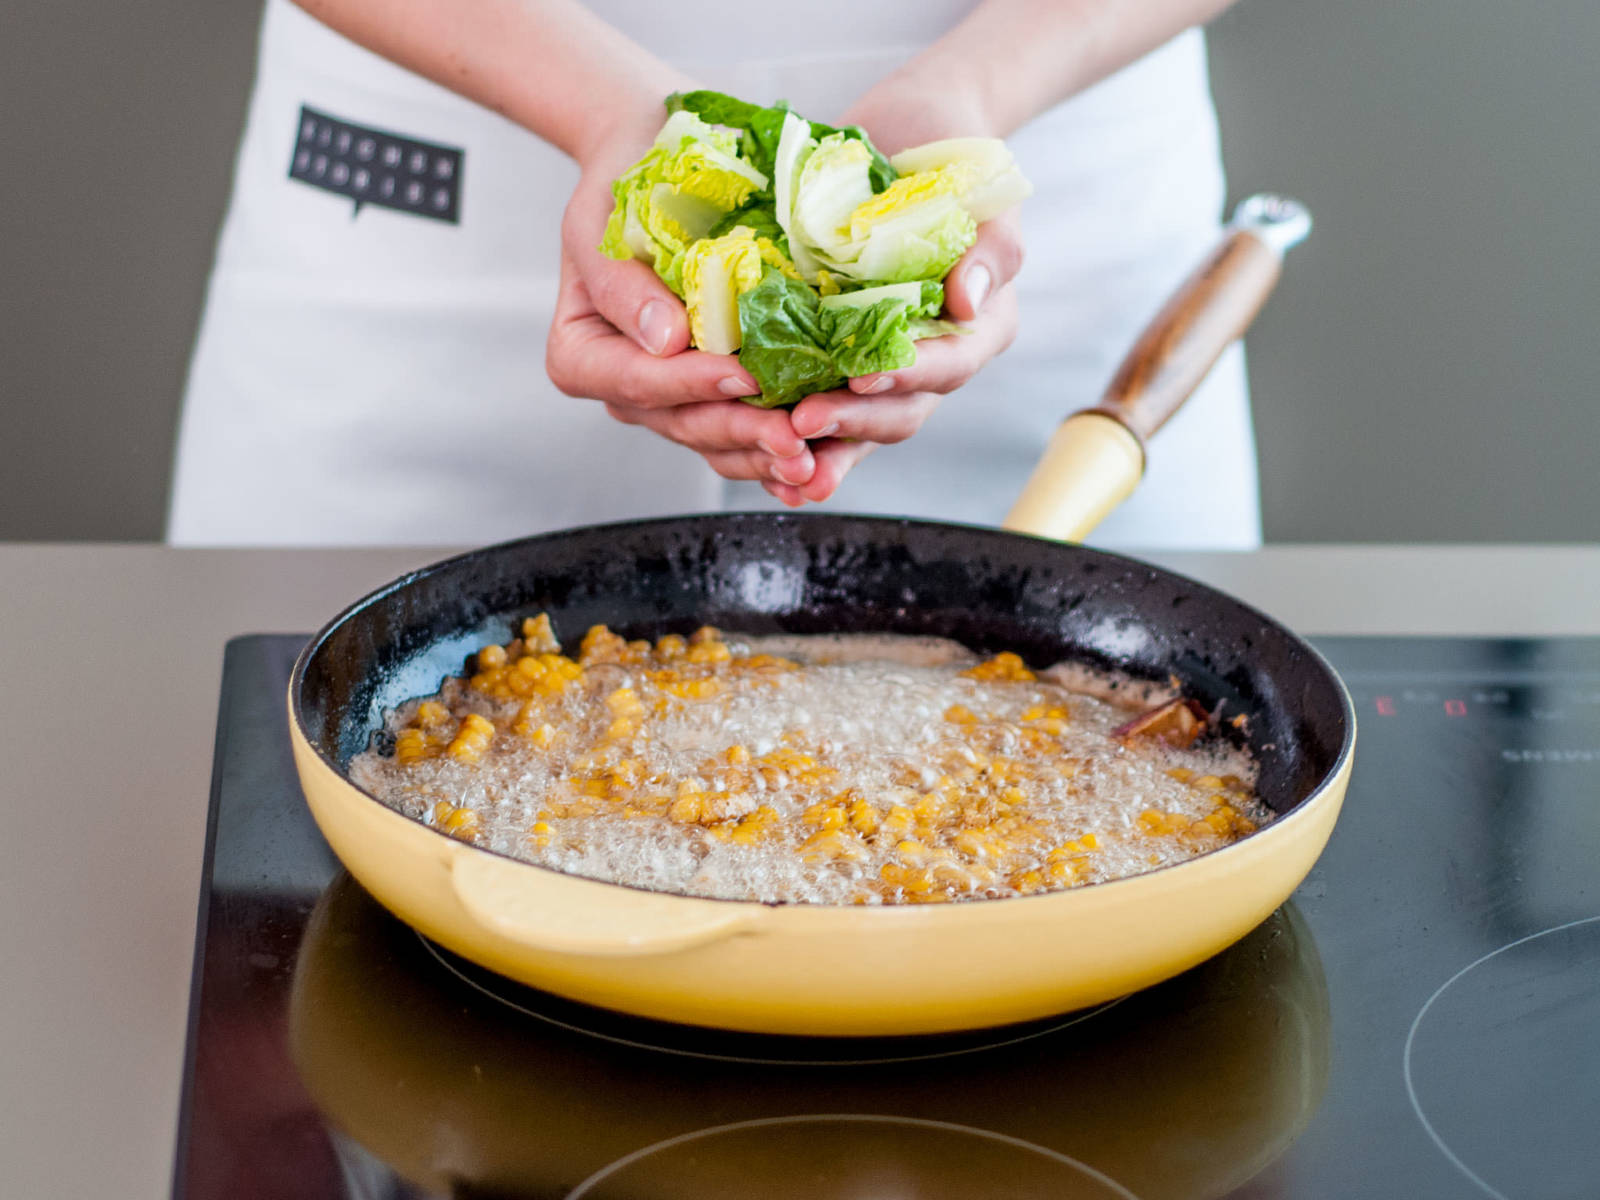 Add lettuce and cilantro to pan and quickly sauté for approx. 1 - 2 min. Remove from heat. Ladle some of the corn salad into a serving pan. Arrange the pork chops on top and then garnish with more corn salad and yogurt sauce. Enjoy!